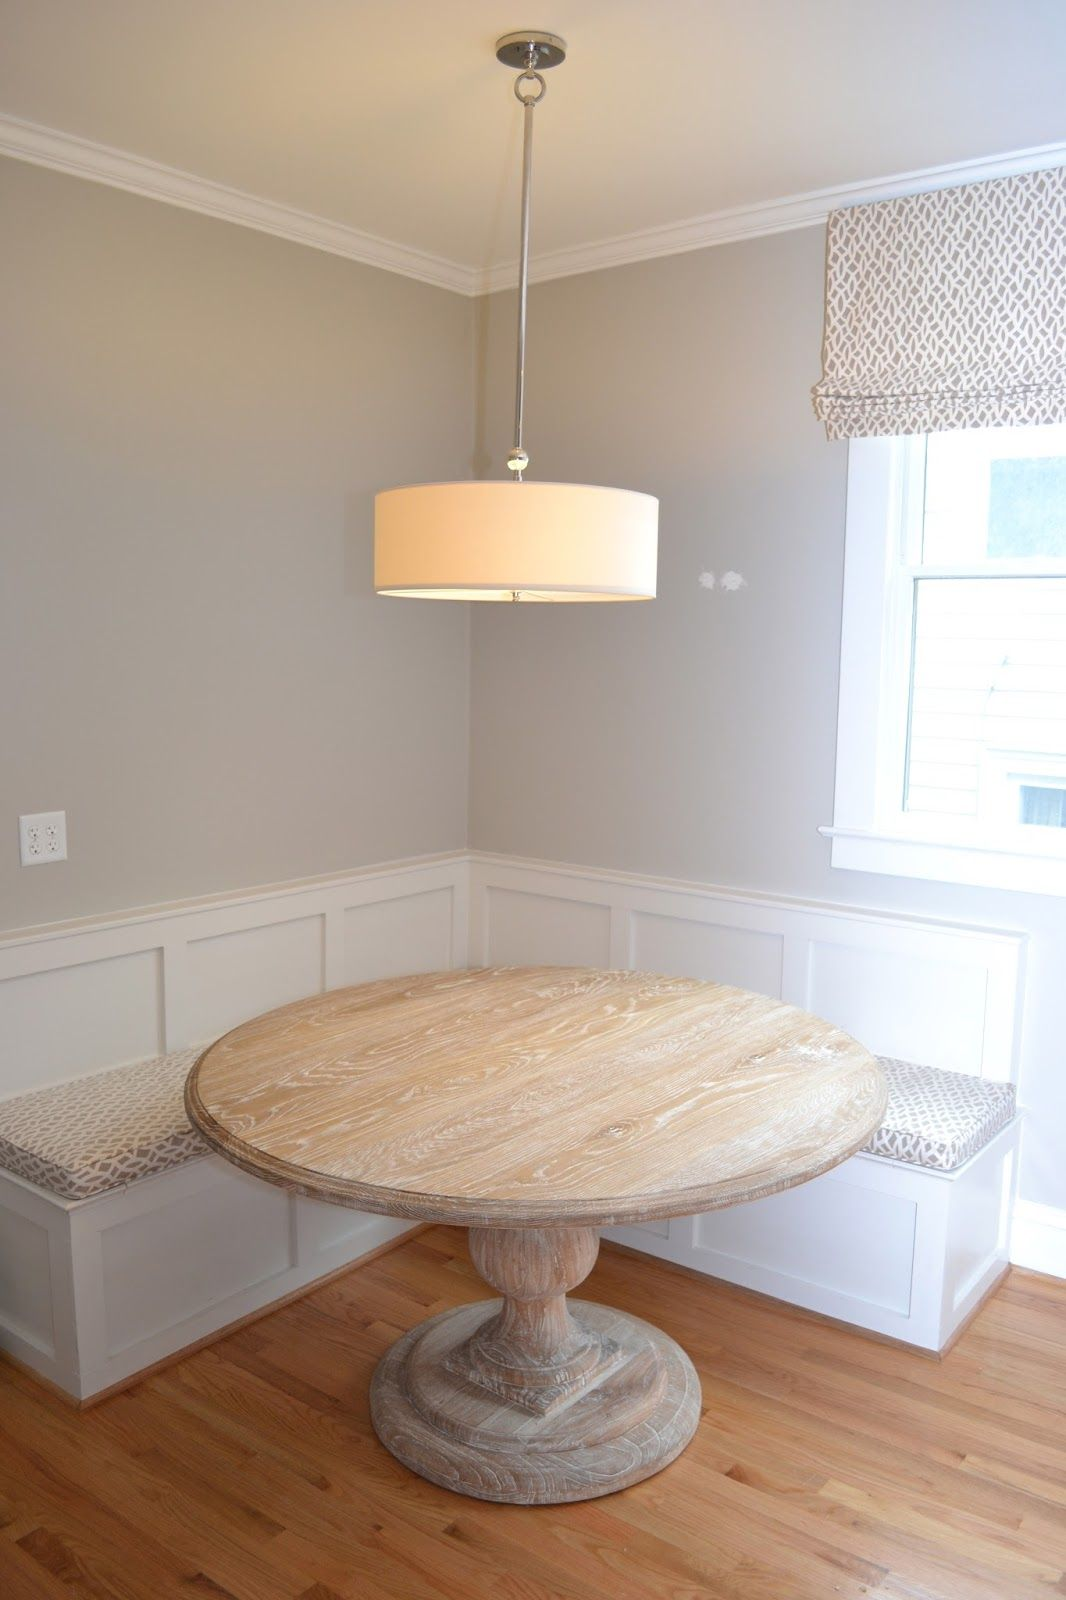 Kitchen nook. LUCY WILLIAMS INTERIOR DESIGN BLOG: BEFORE AND AFTER ...